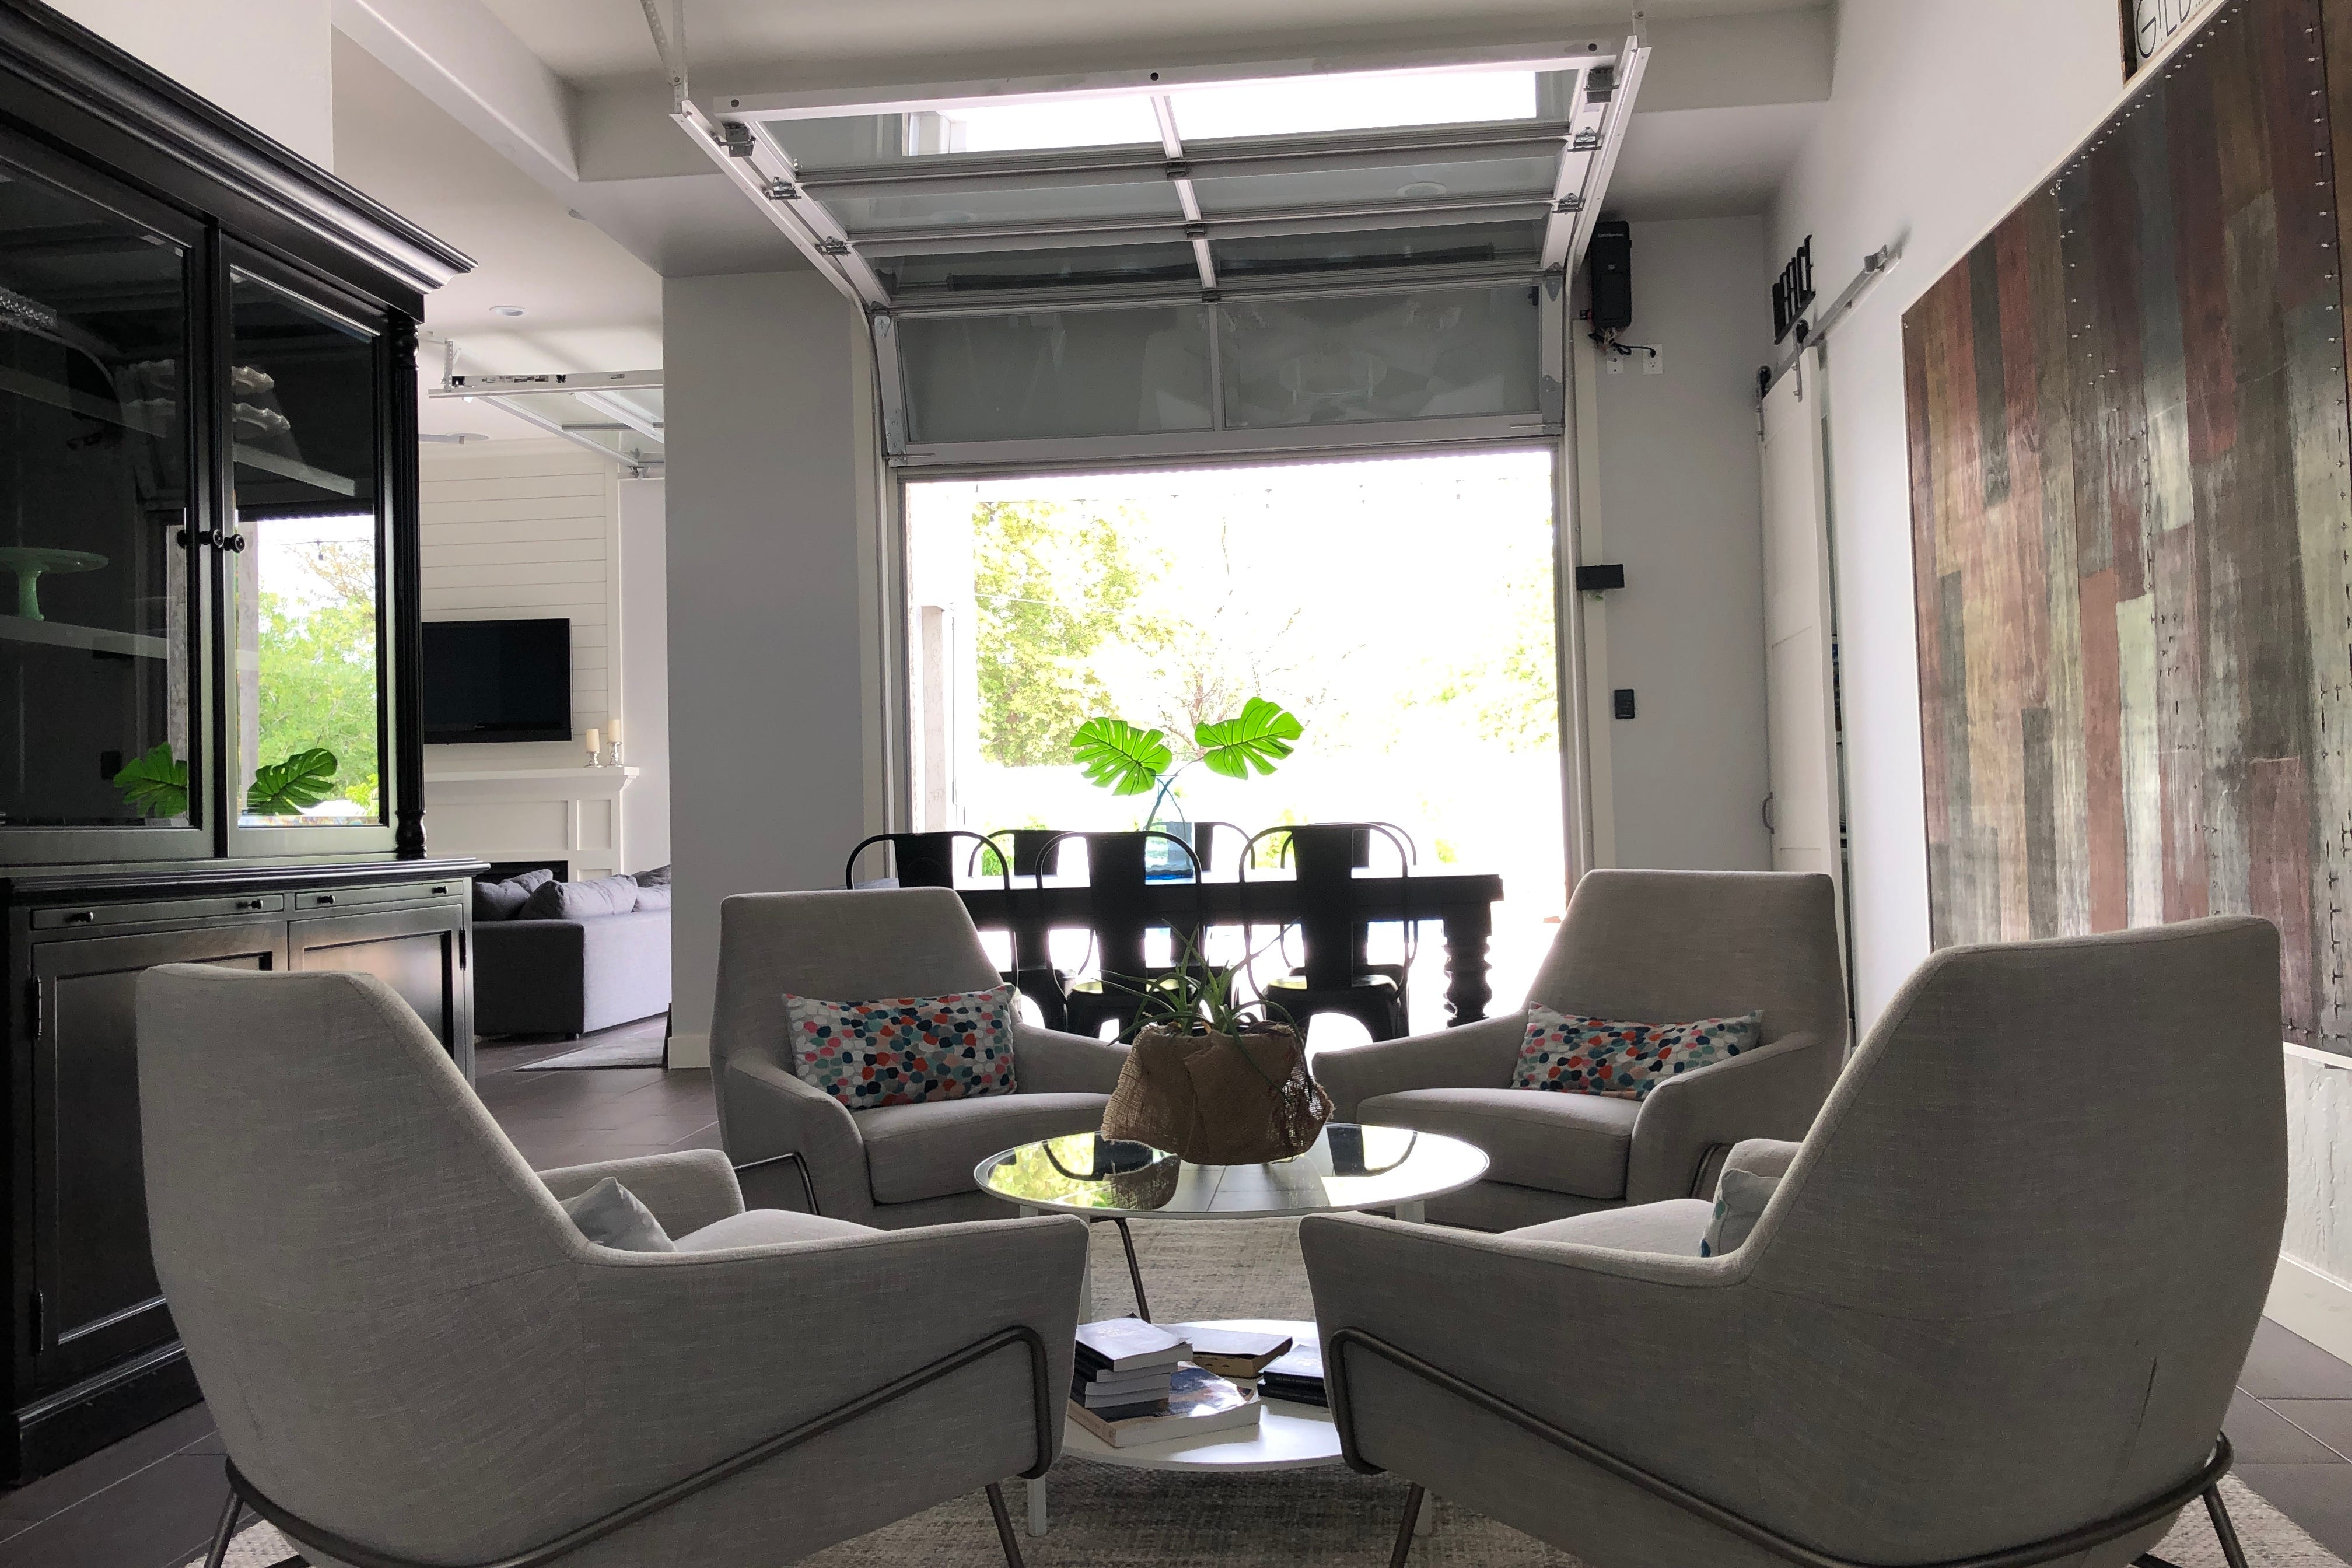 Delightful A Garage Door In The Living Room? Gilbert Mayoru0027s Home Creatively Opens Up  The Space